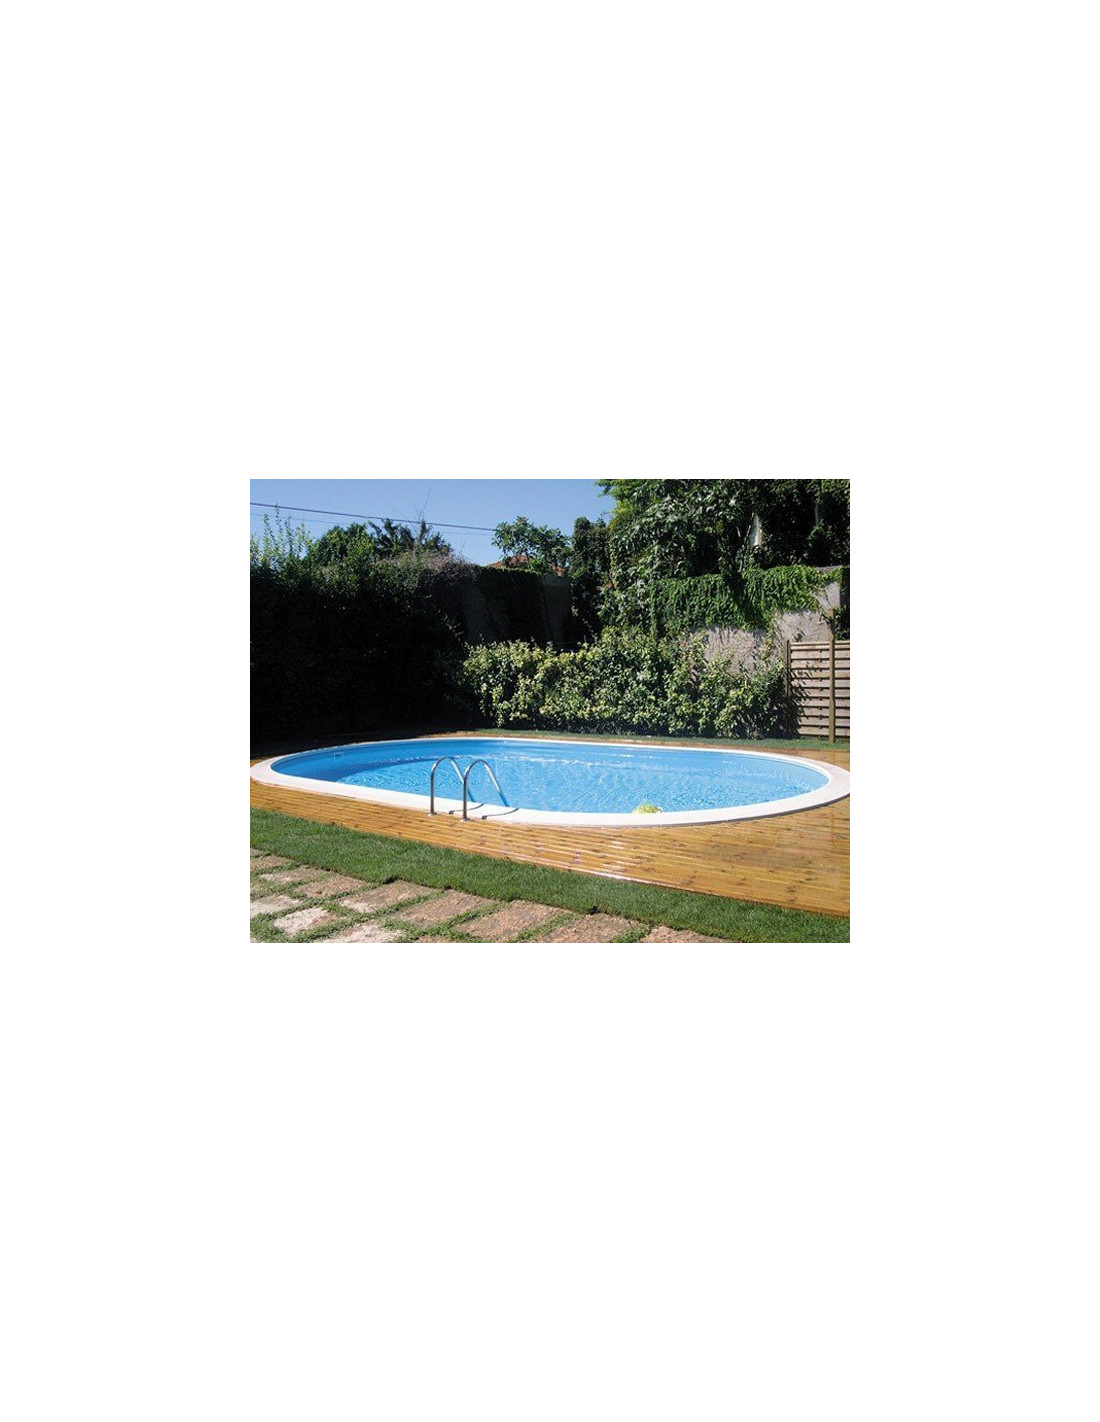 Kit piscine enterr e ovale star pool l 5 8 10 x h 1 50 for Kit piscine enterree